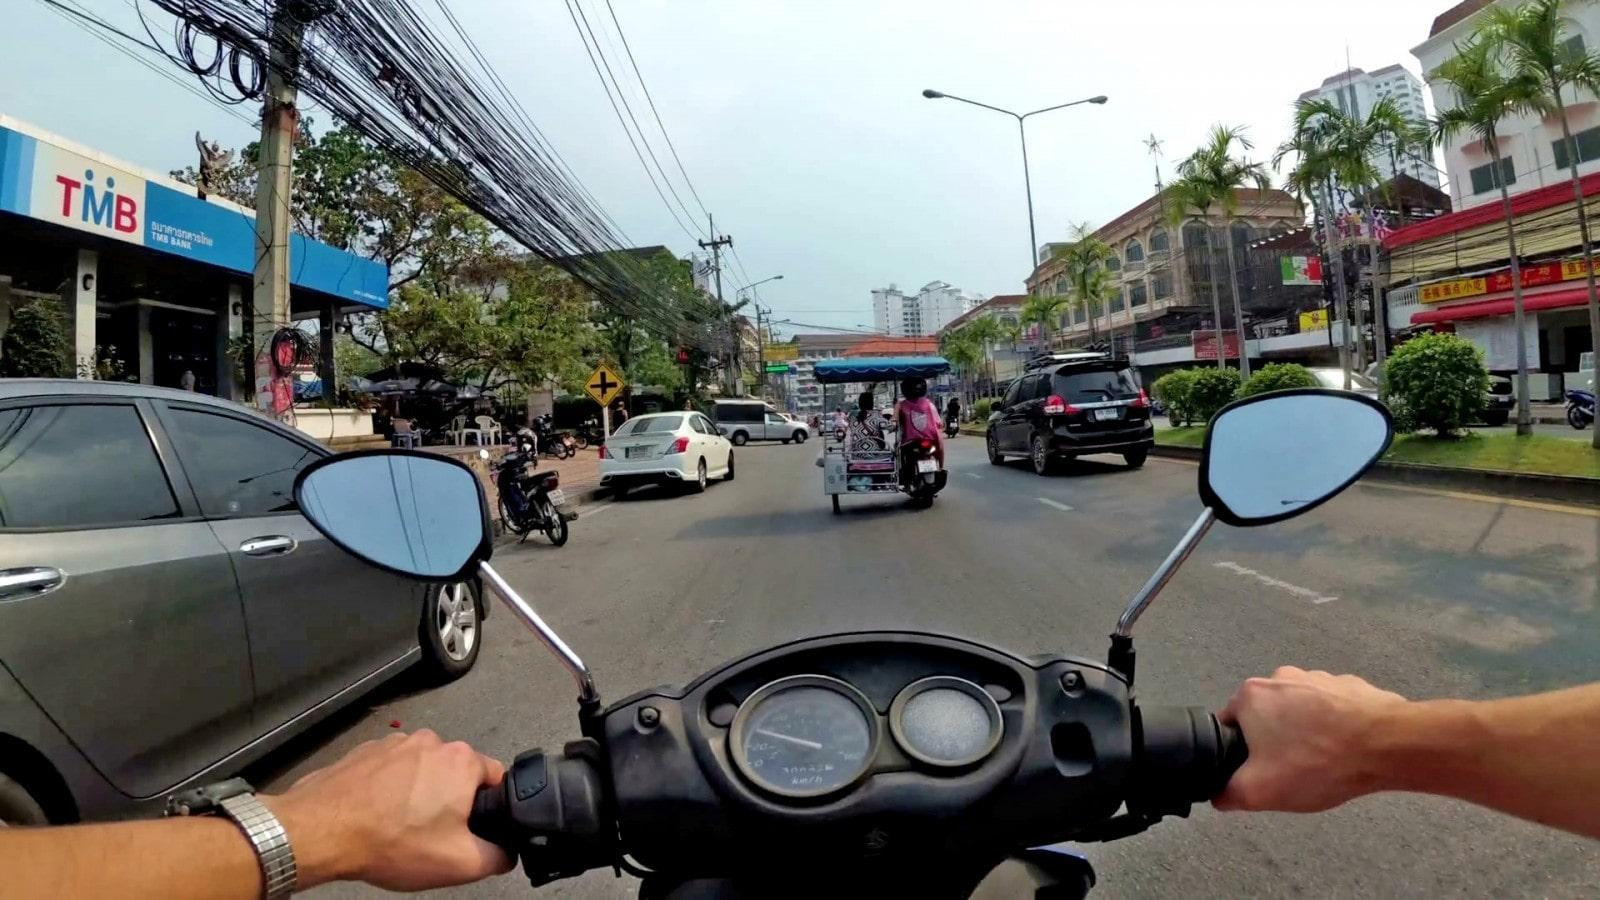 Top 10 tips for riding a motorbike in Thailand | The Thaiger